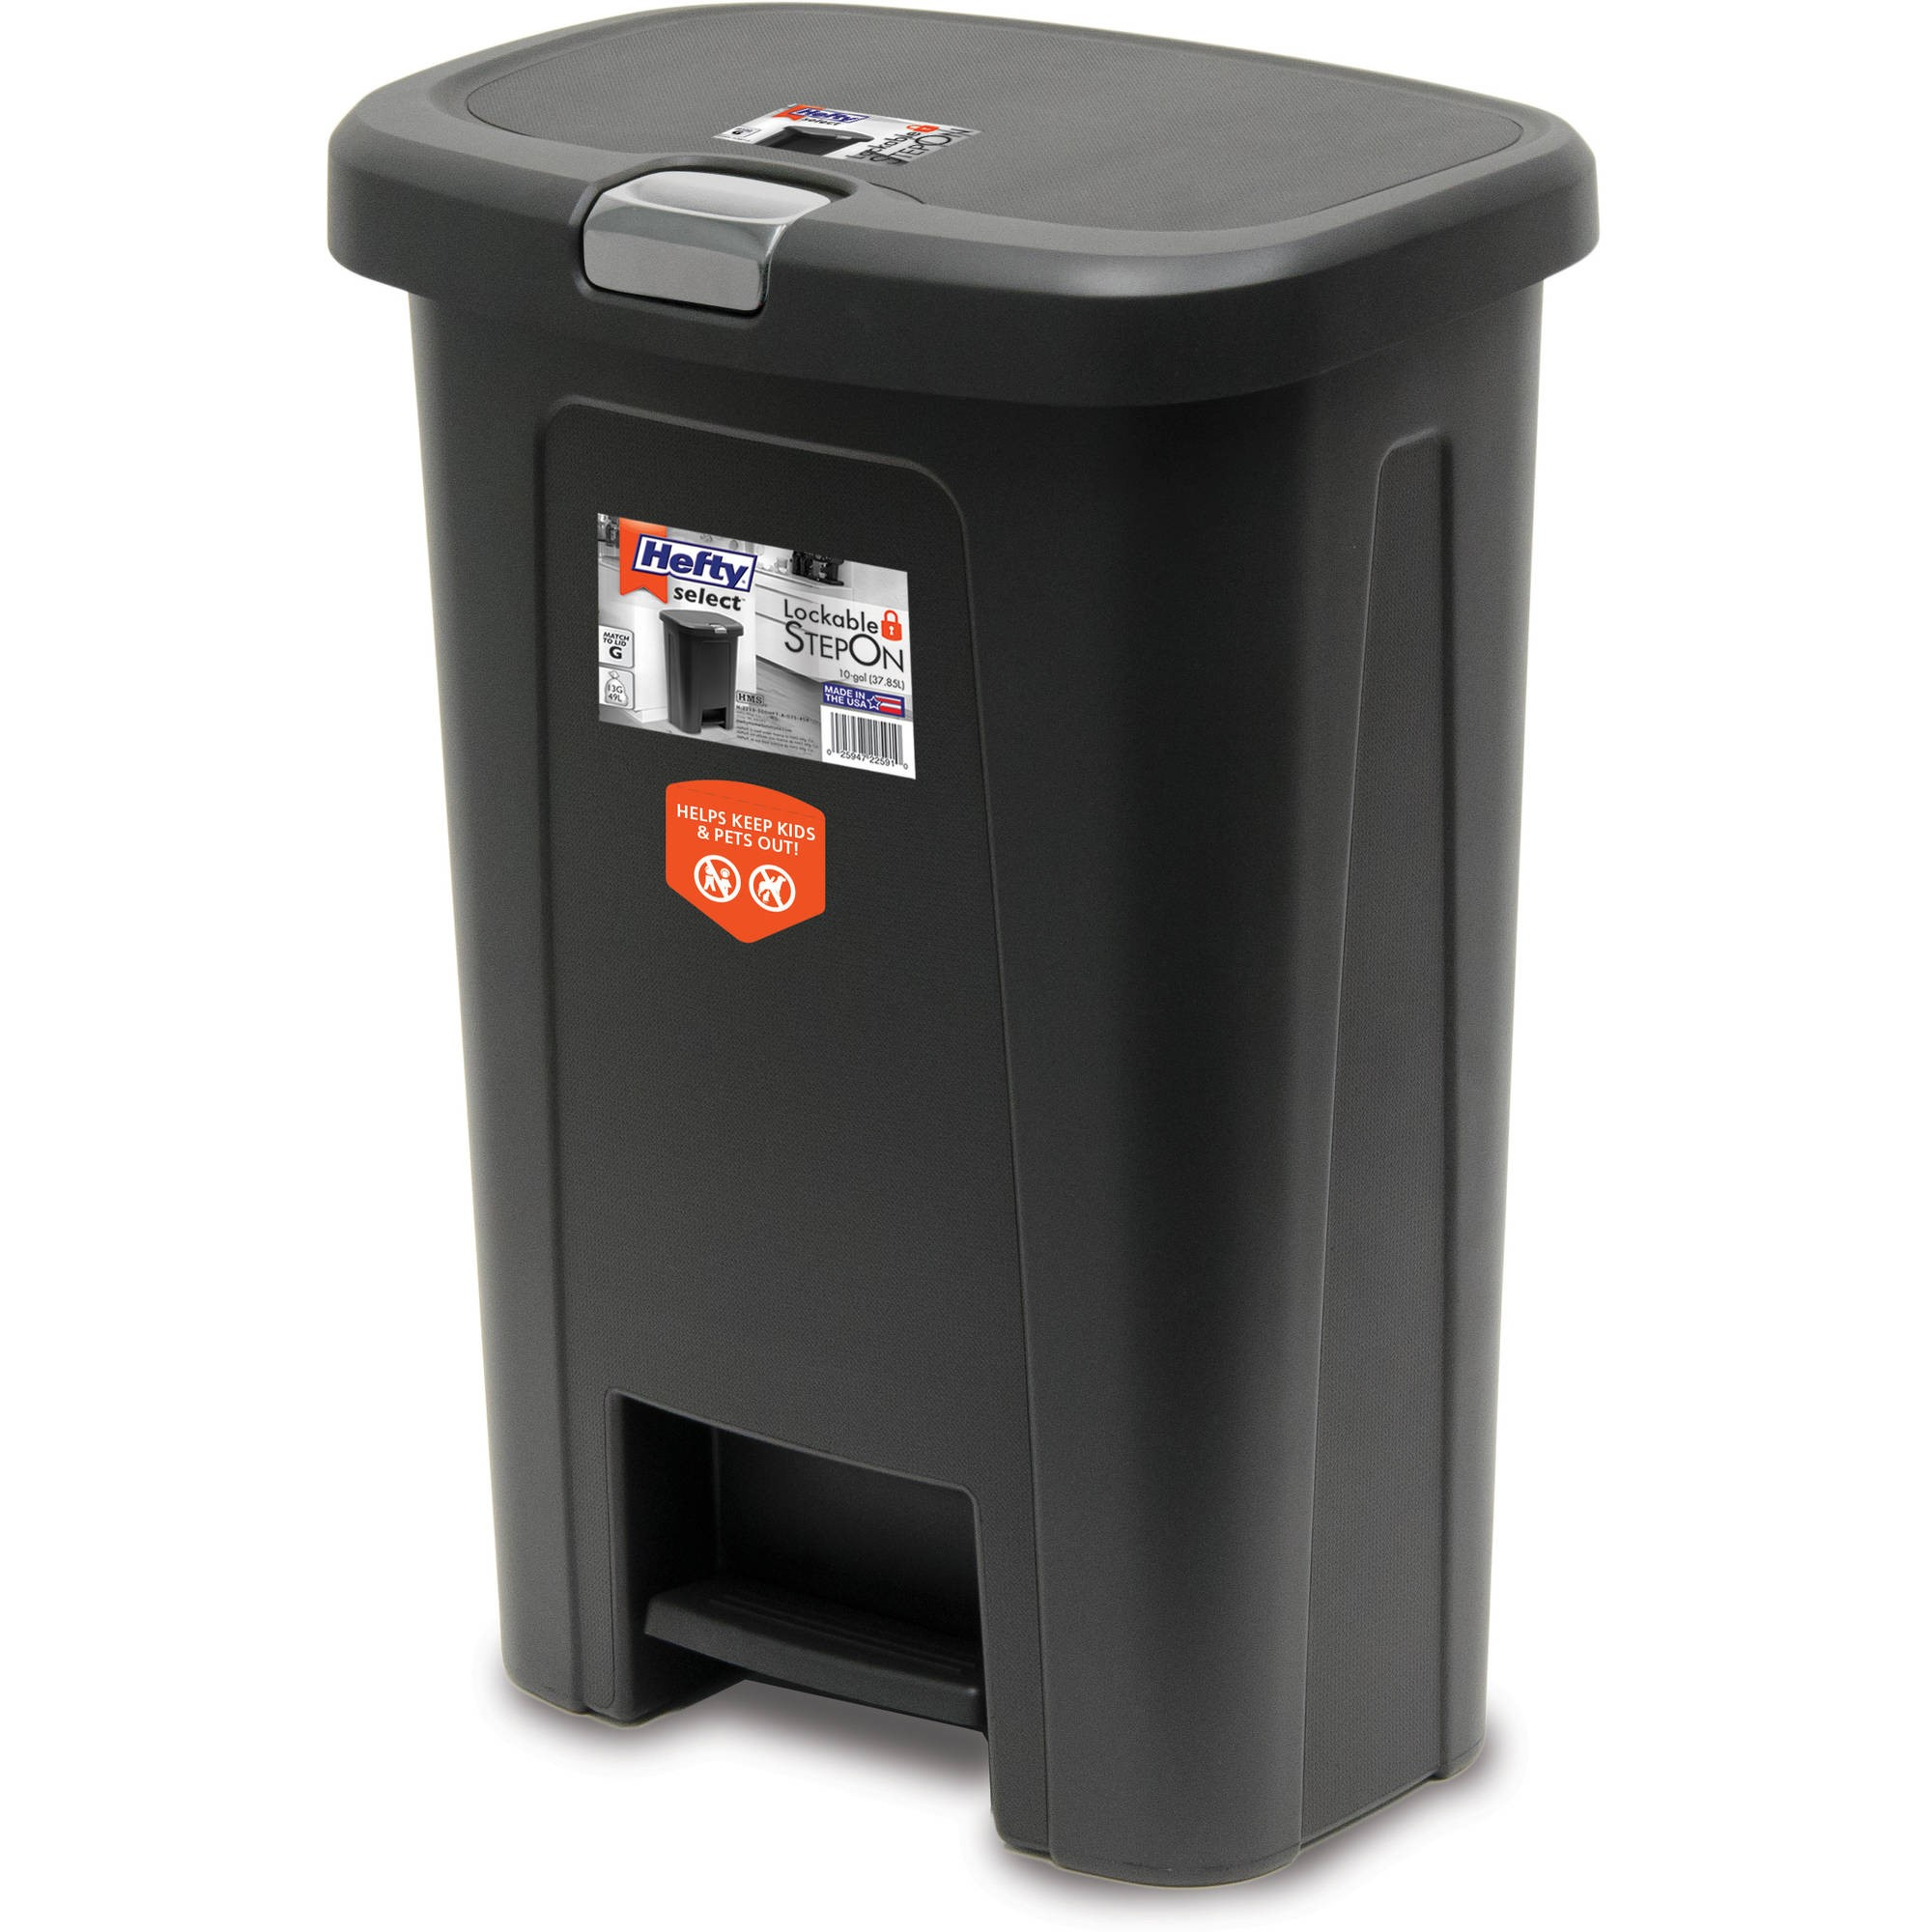 HEFTY 10G Wide Step On Textured with Silver Lid Lock Trash Can, Black by Reynolds Consumer Products LLC